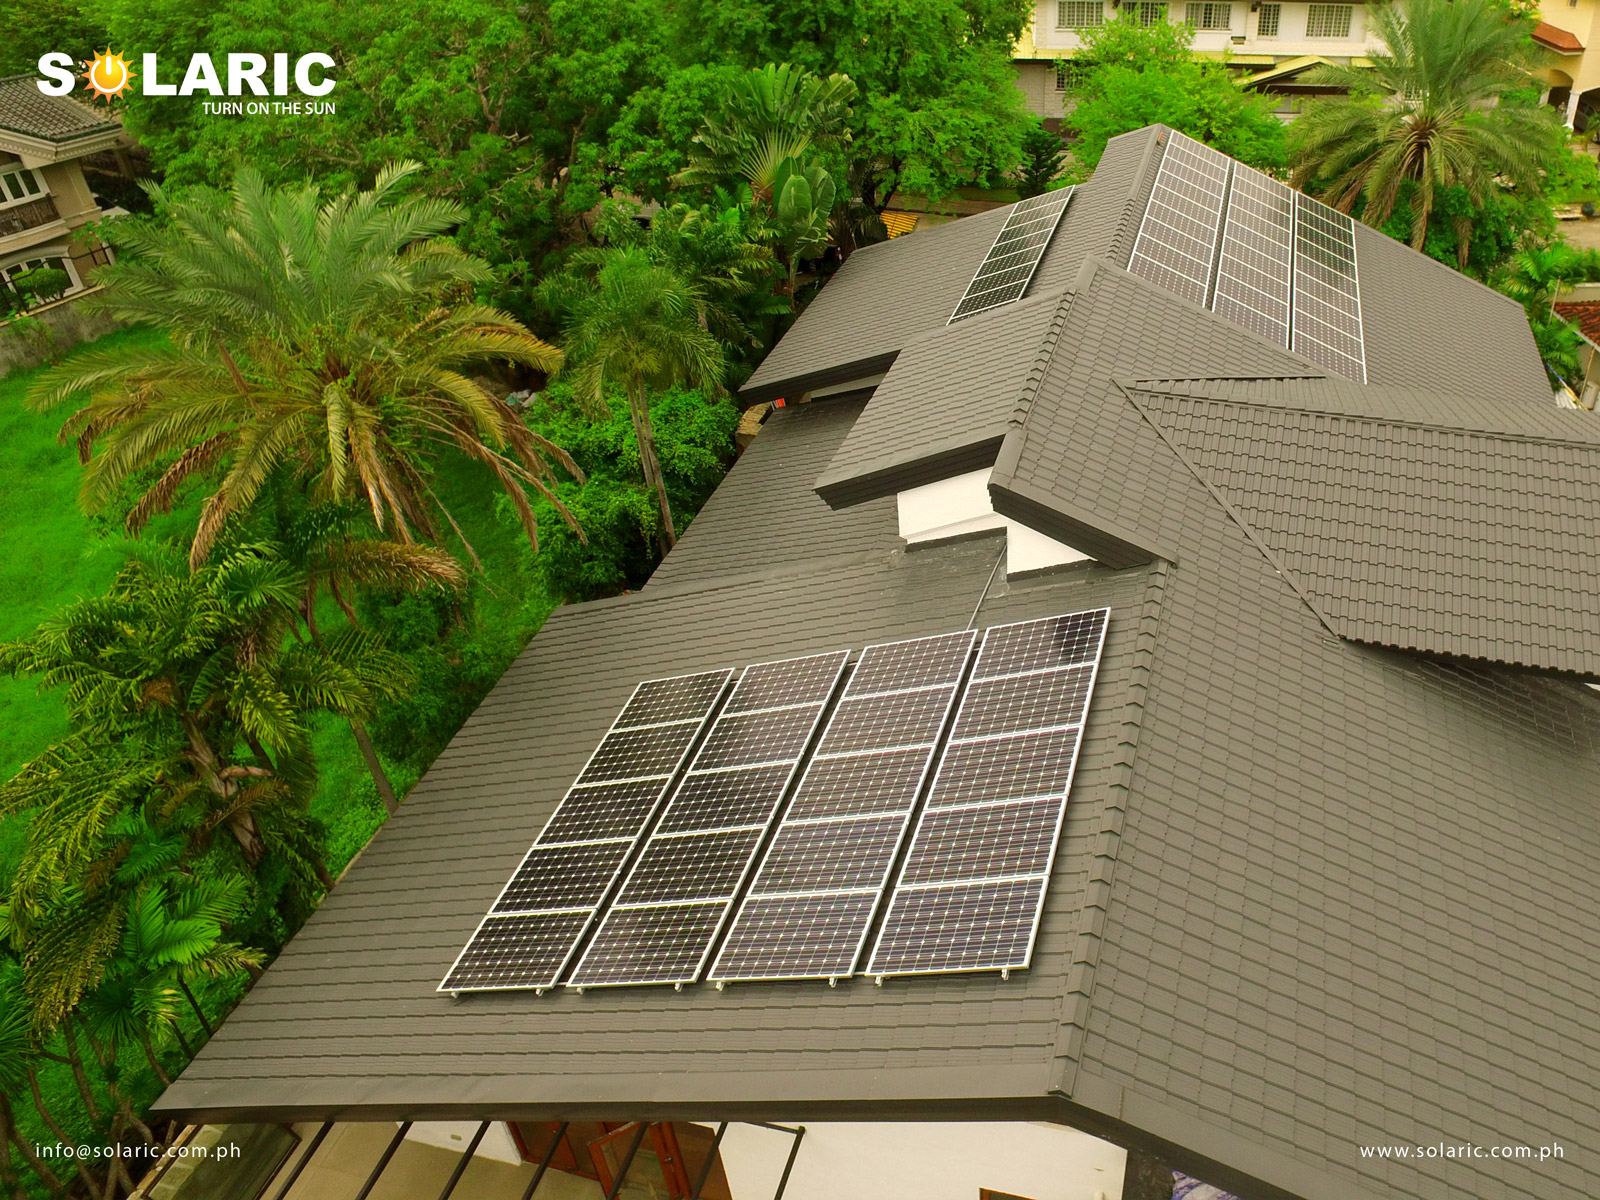 Home designs with solar panel prices in the philippines for Solar powered home designs